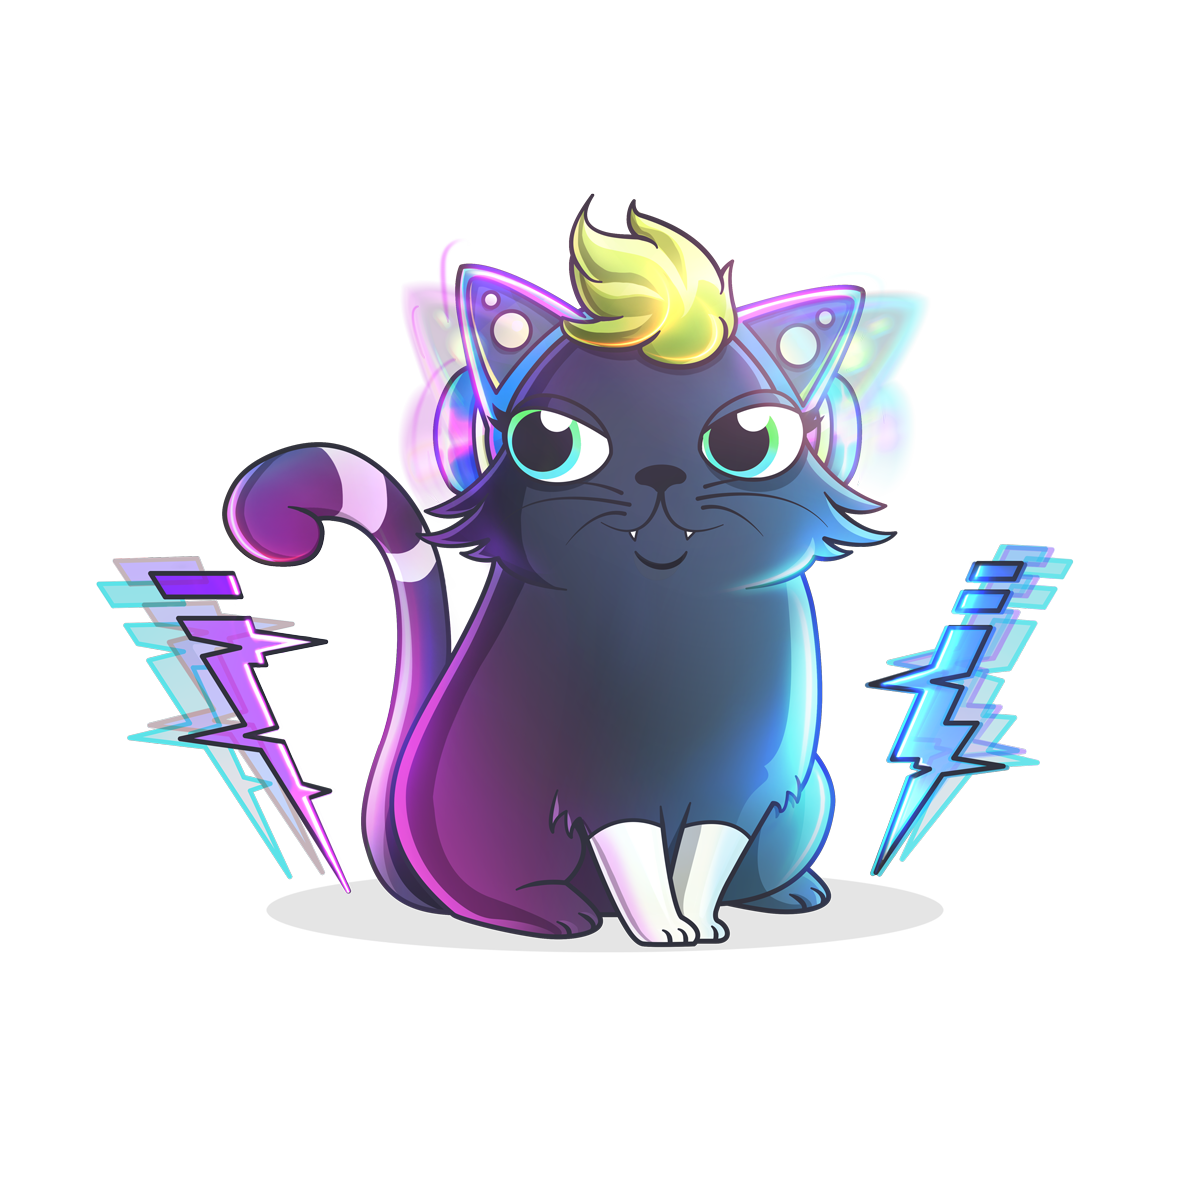 cryptokitty #1736784